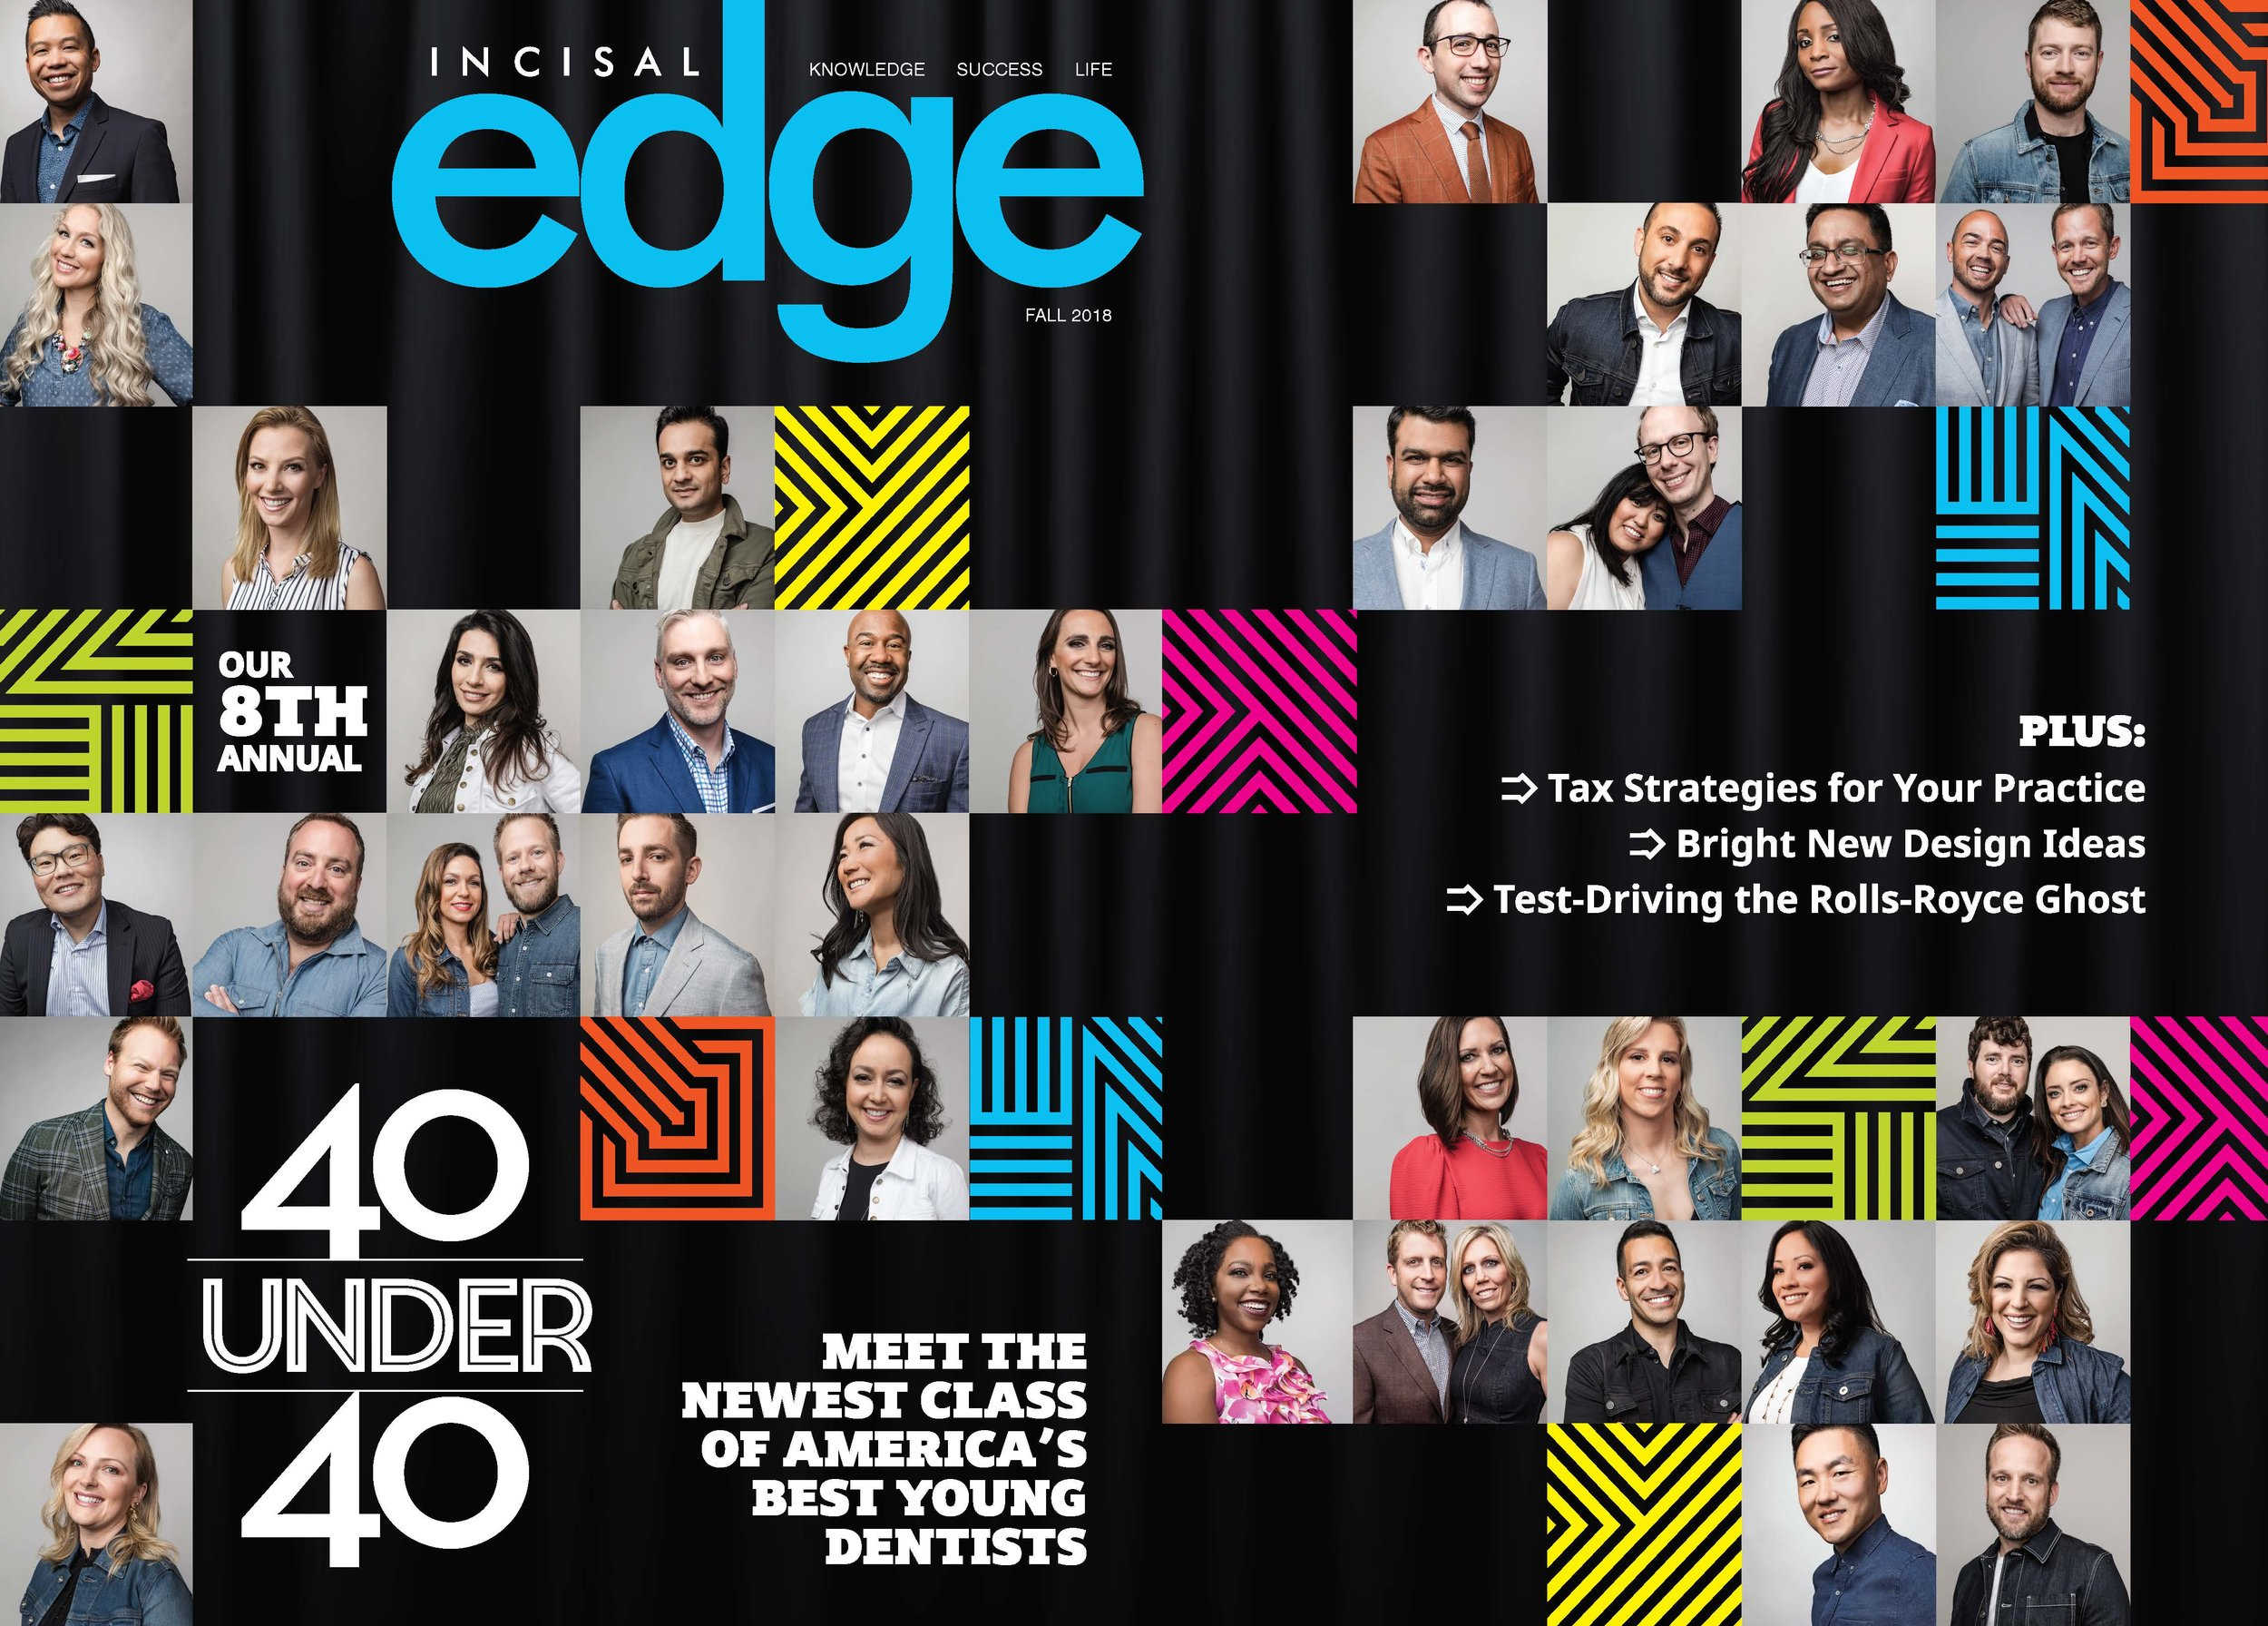 Incisal Edge 2018 Fall Cover featuring 2018 40 Under 40 Class of America's Best Young Dentists